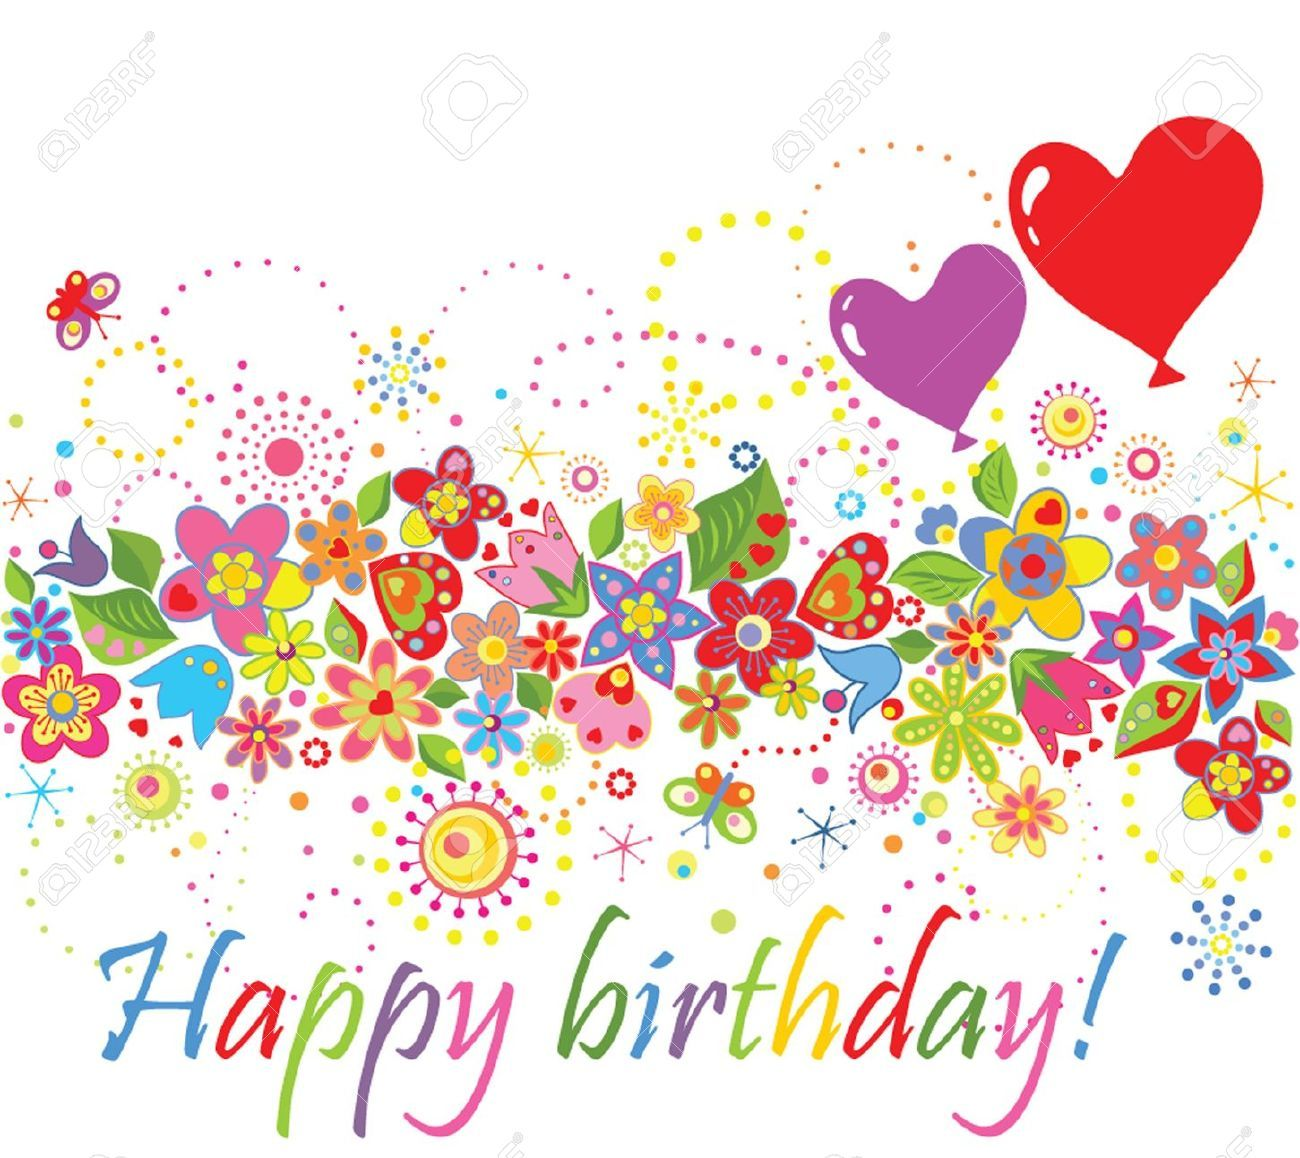 Happy birthday image with butterflies google search birthdays happy birthday image with butterflies google search izmirmasajfo Image collections